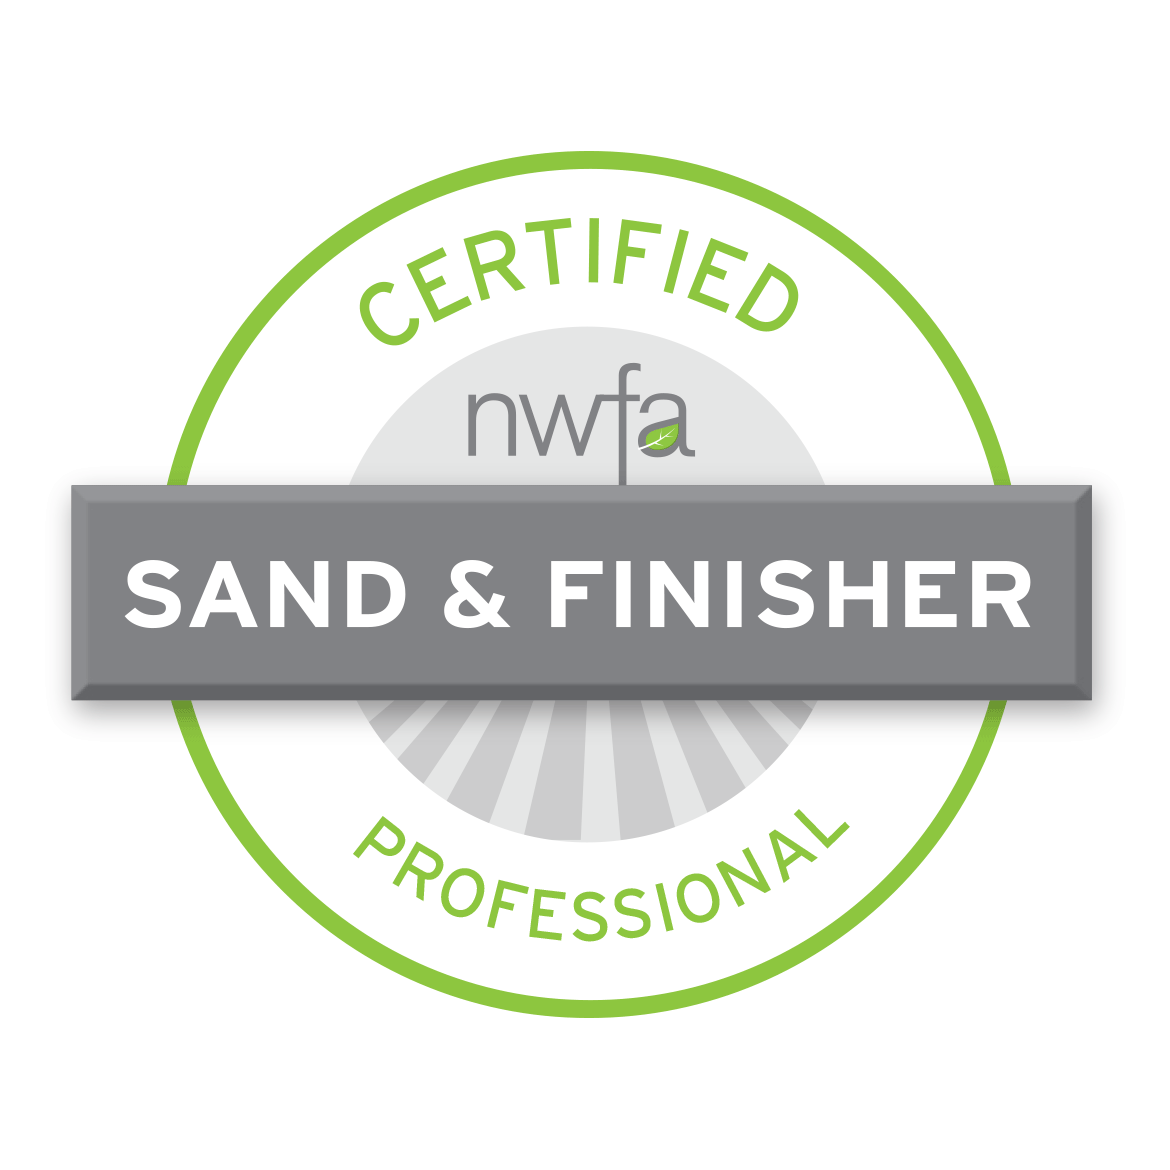 Certified Professional Sand & Finisher (CSF)